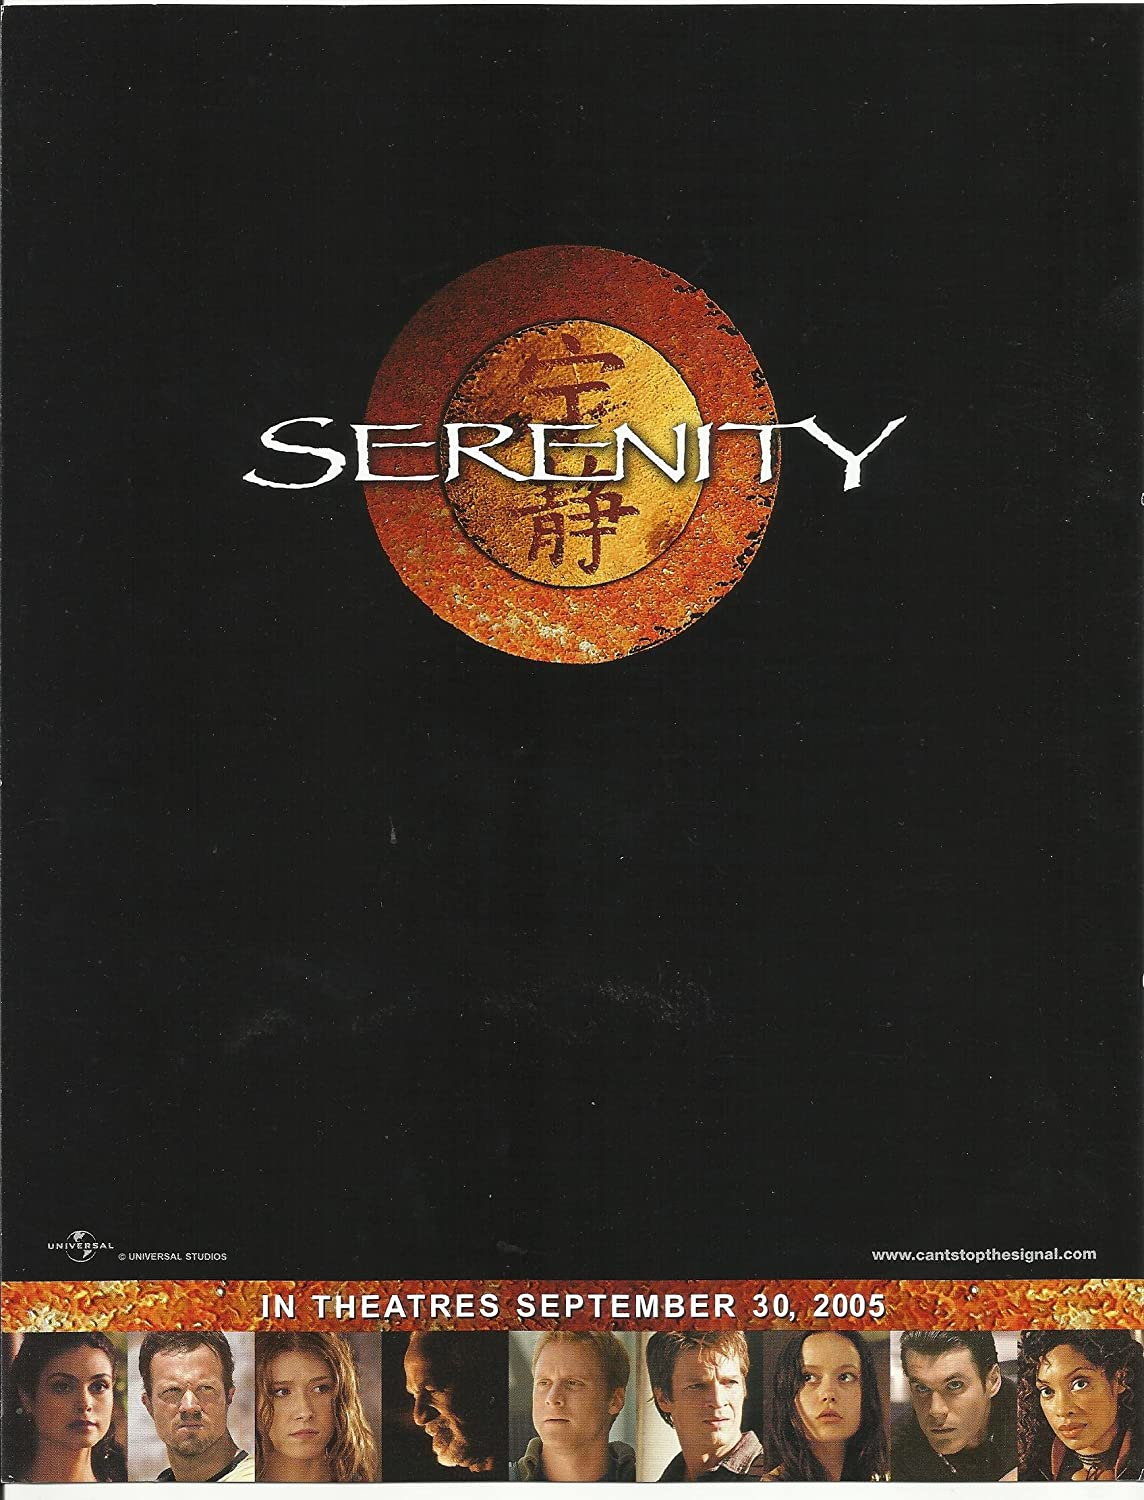 Serenity Nathan Fillion, Gina Torres & Adam Baldwin 8.5 x 11 Cast Promotional Poster #2 serenity